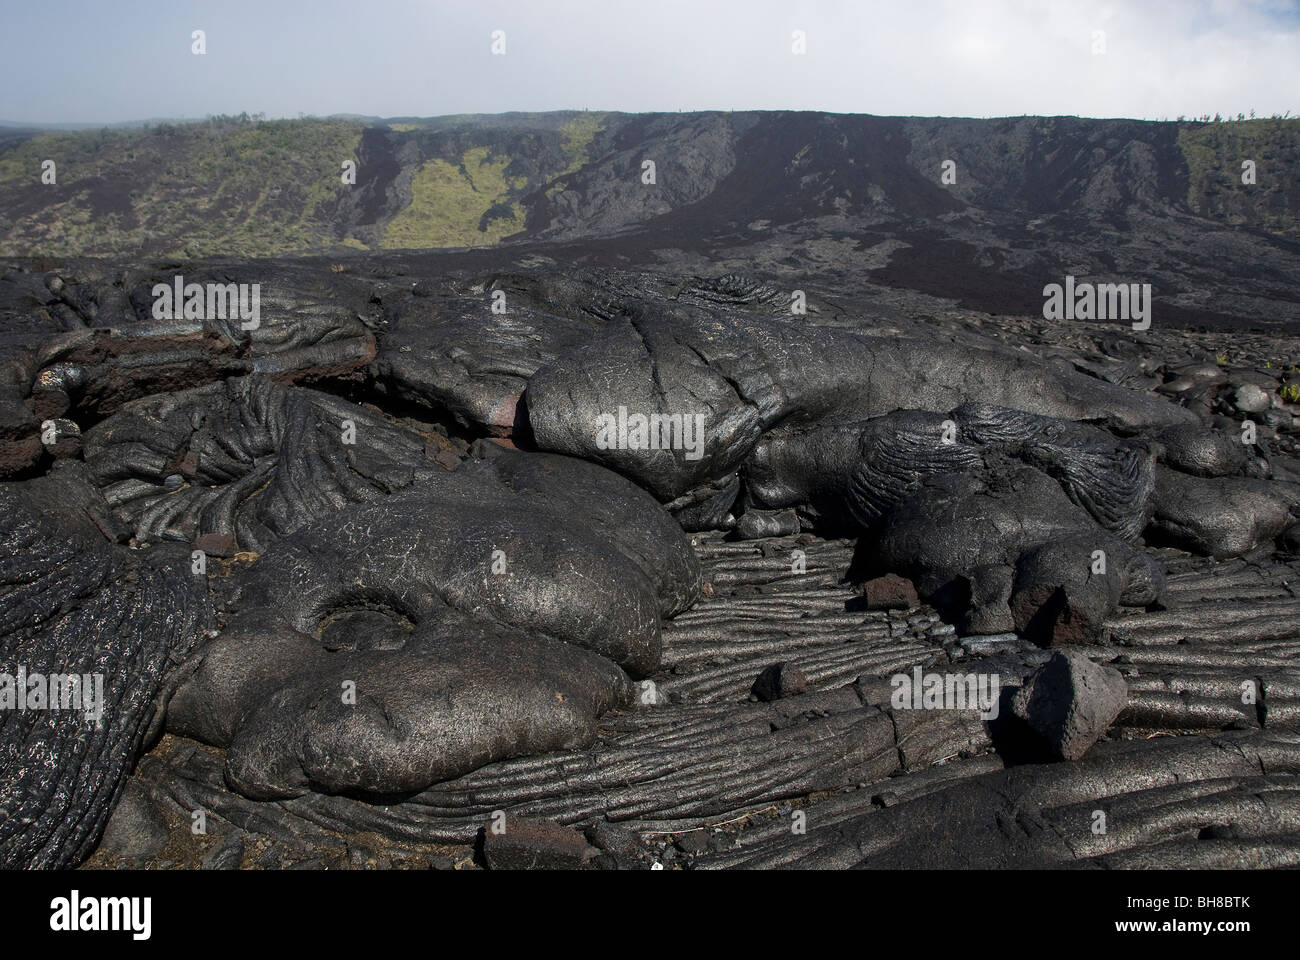 Pahoehoe Lava from Chain of Craters Road Hawaii Volcanoes National Park Hawaii USA - Stock Image